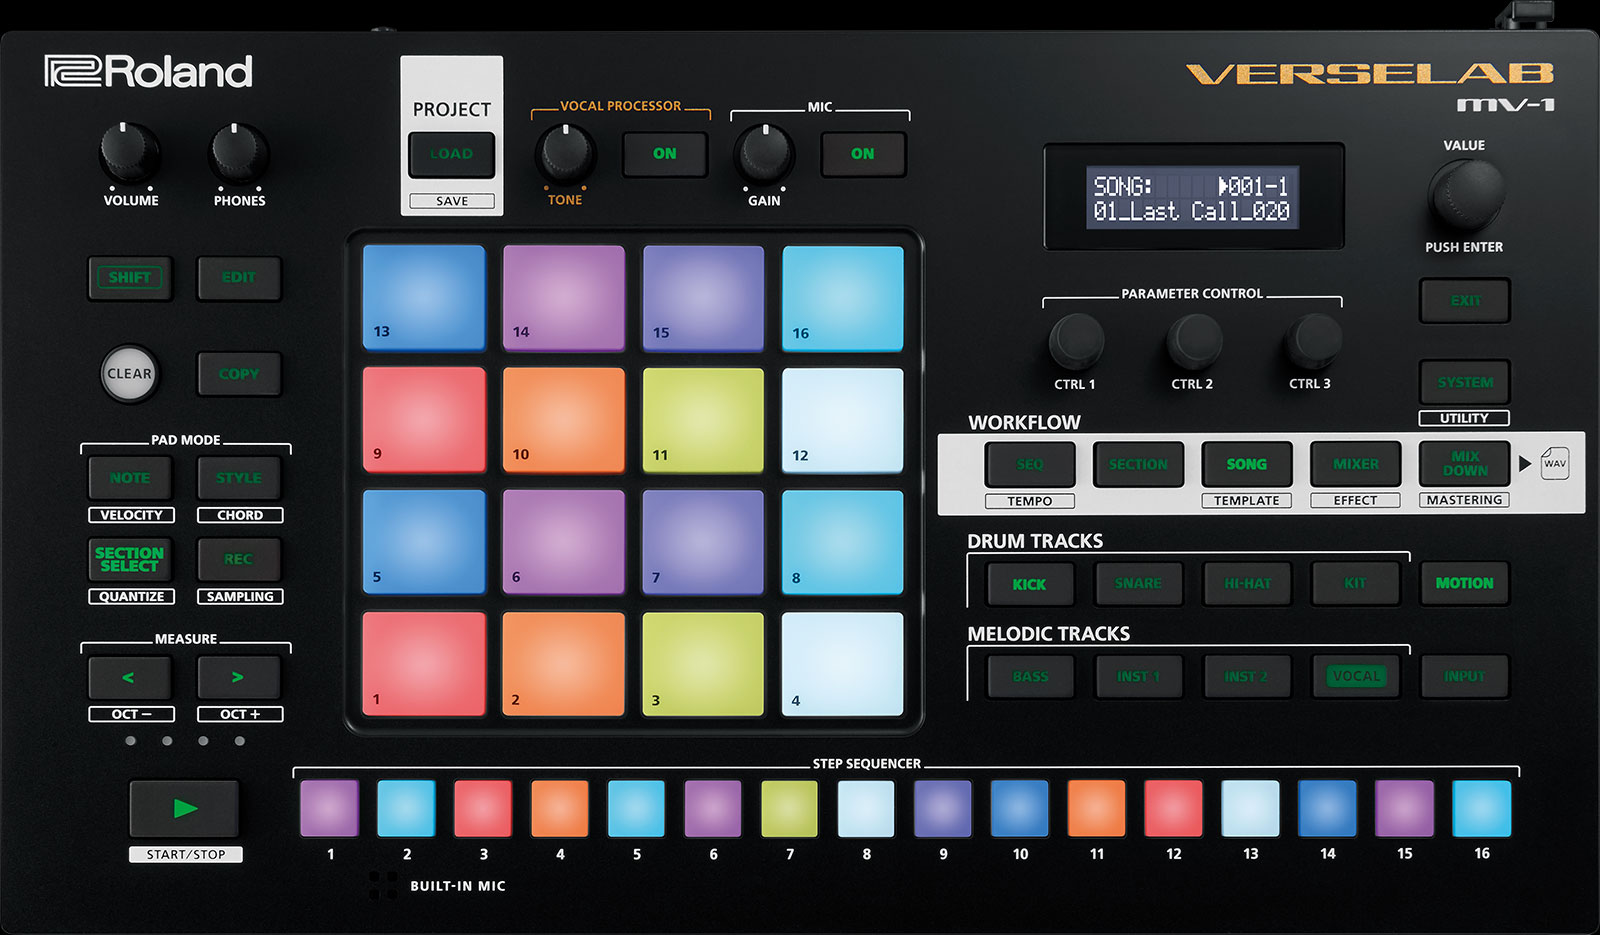 Roland unveils Verselab, an all-in-one music production machine